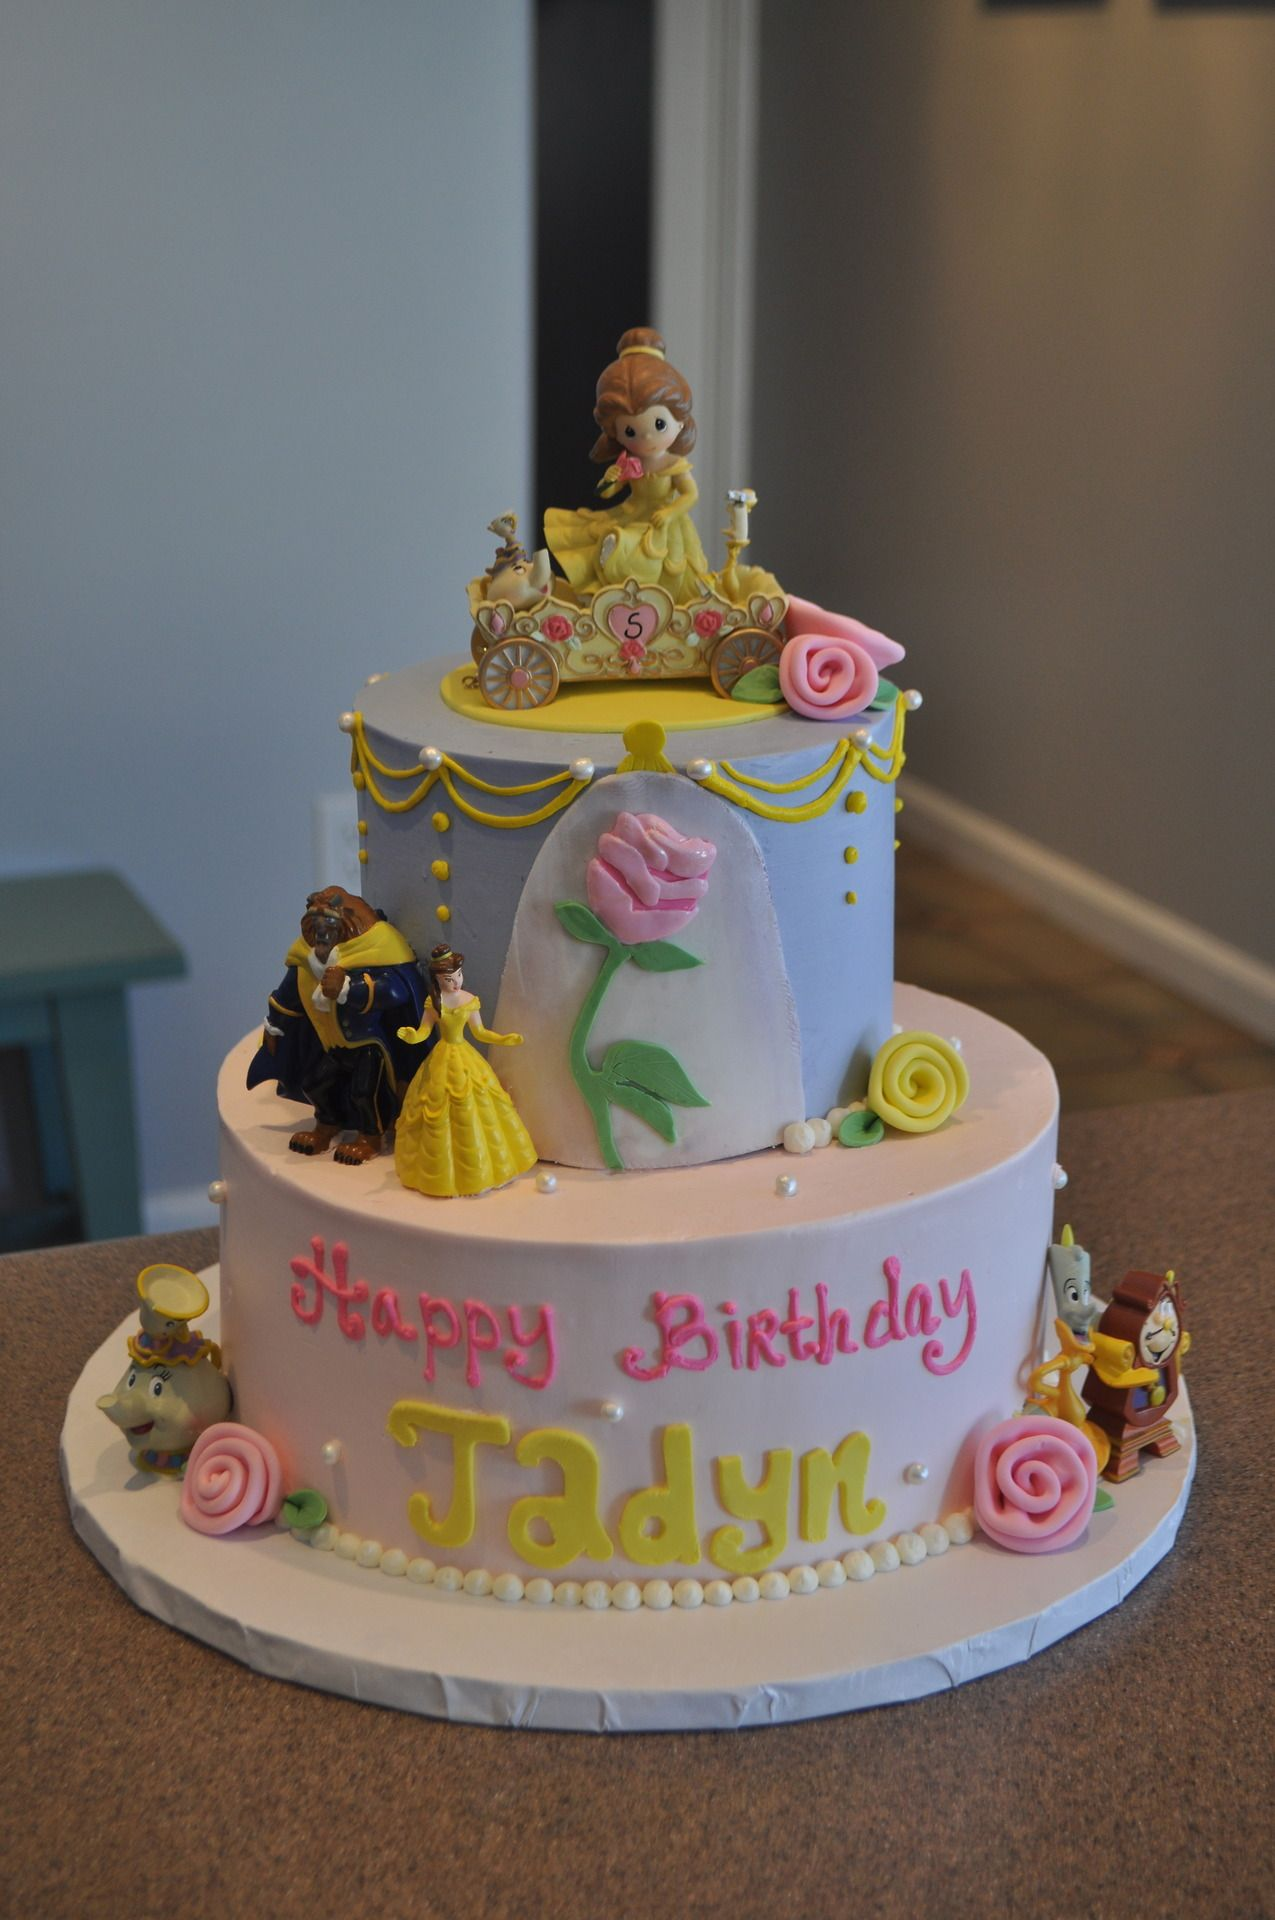 Beauty and the Beast Cake Cakes Pinterest Beast Cake and